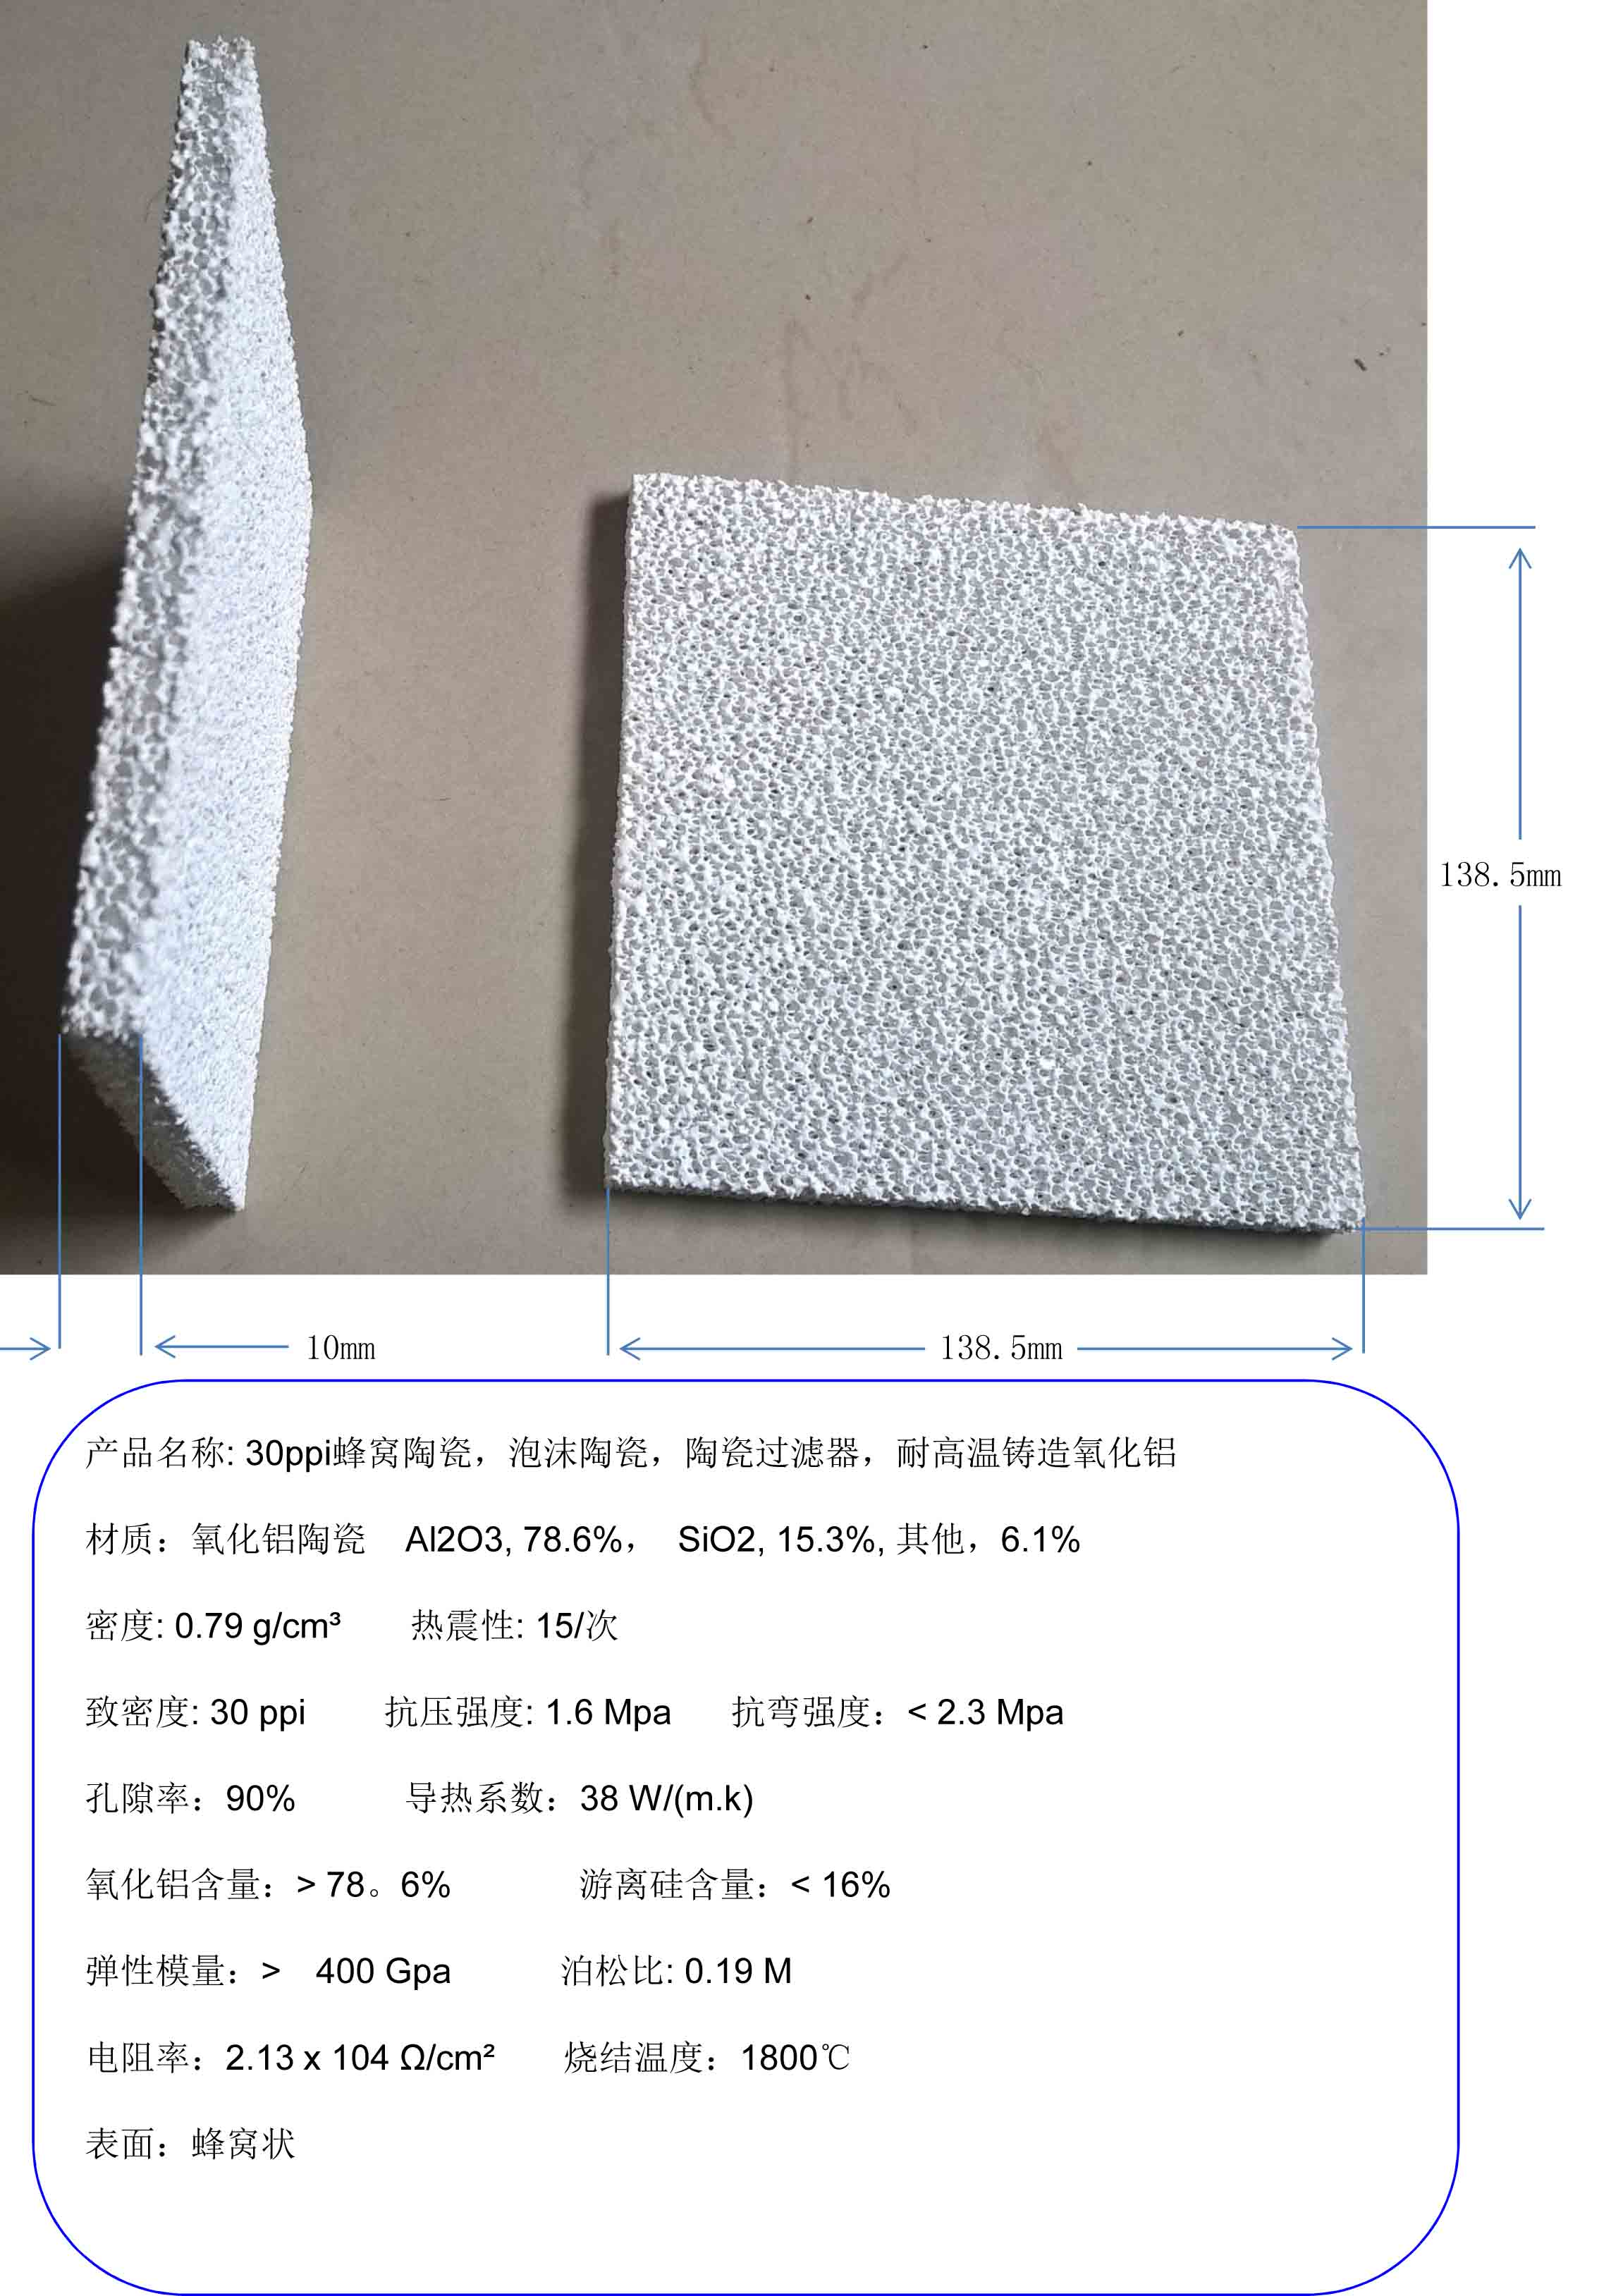 1pcs 30ppi Honeycomb Ceramics, 140mm Foam Ceramics, Ceramic Filters, High Temperature Cast Alumina